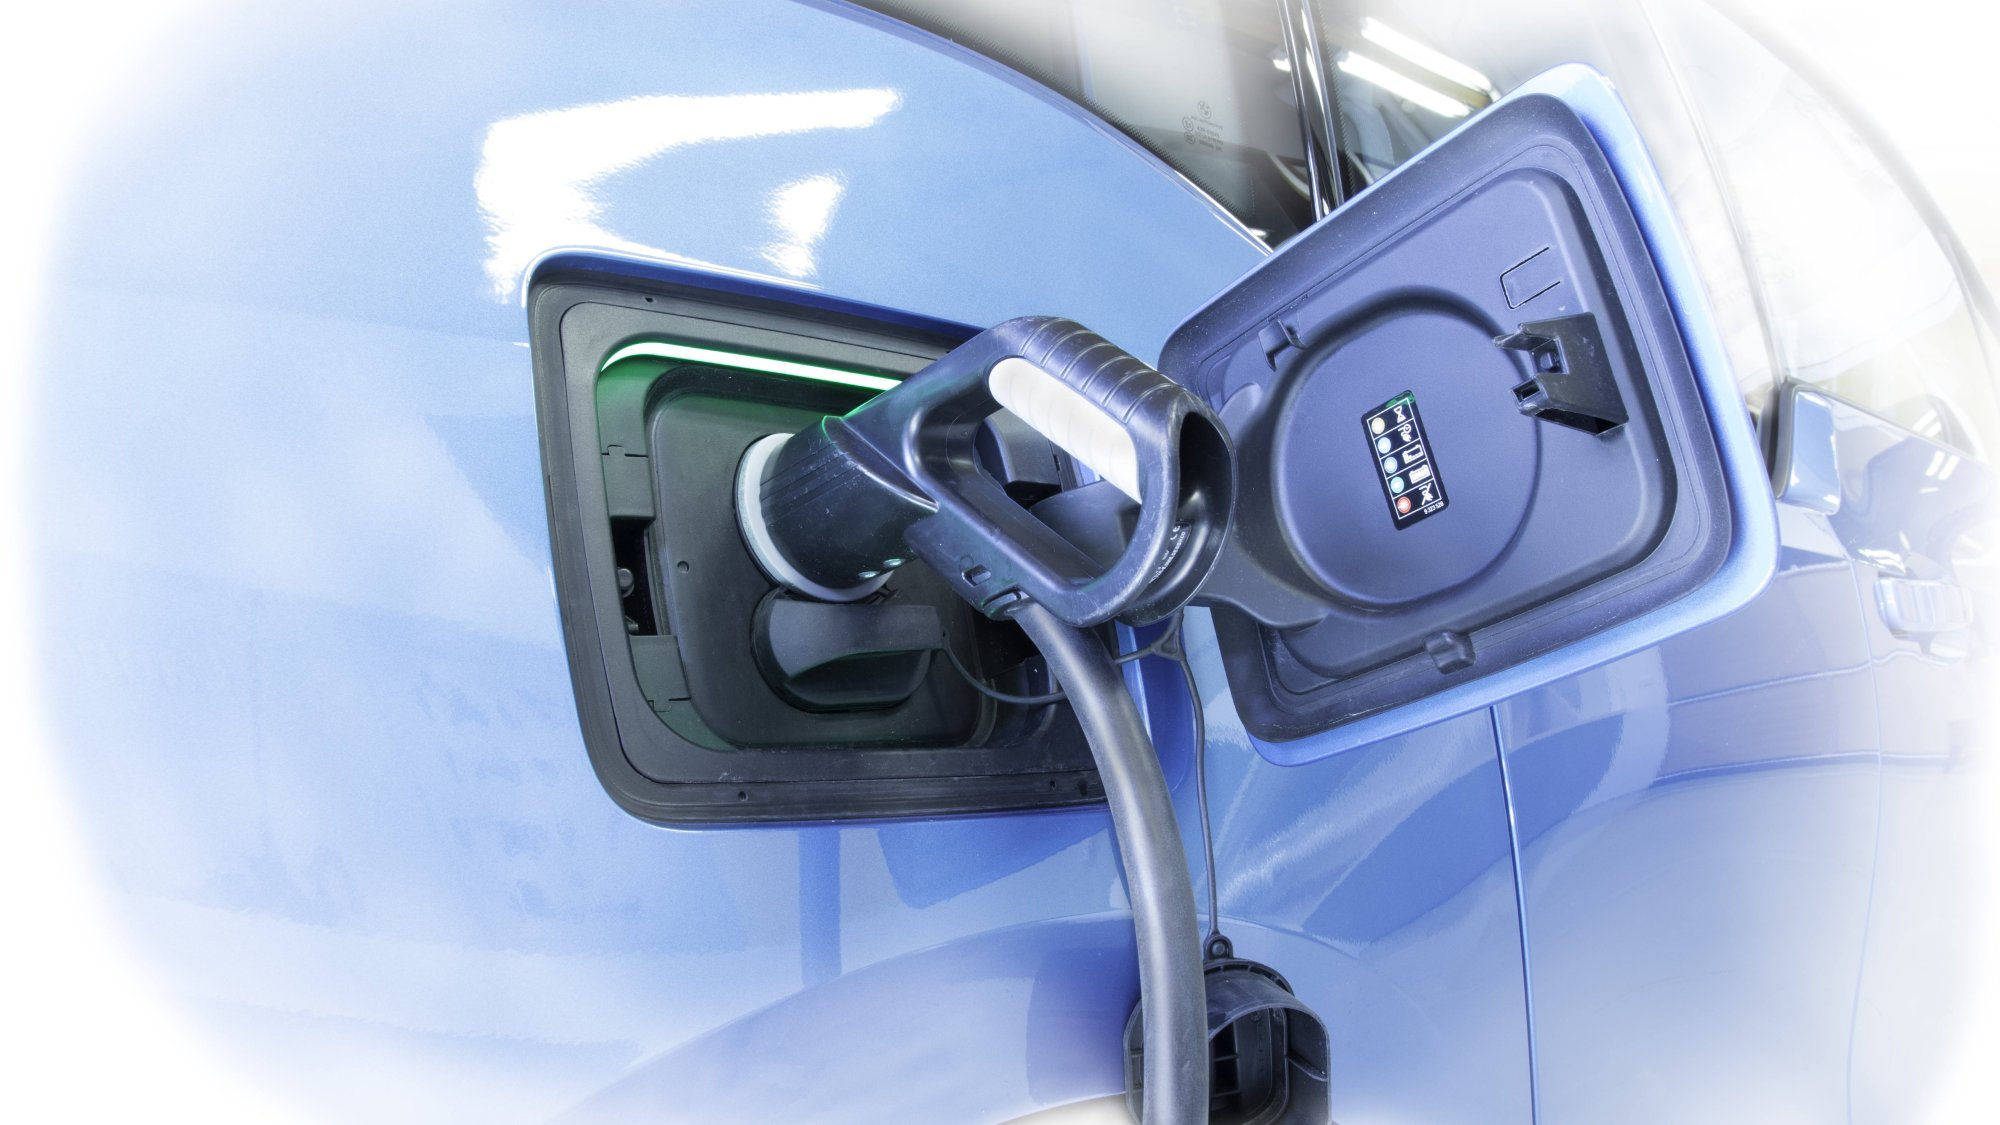 Plugit provides electric vehicle charging solutions to housing cooperatives, employers and other companies.